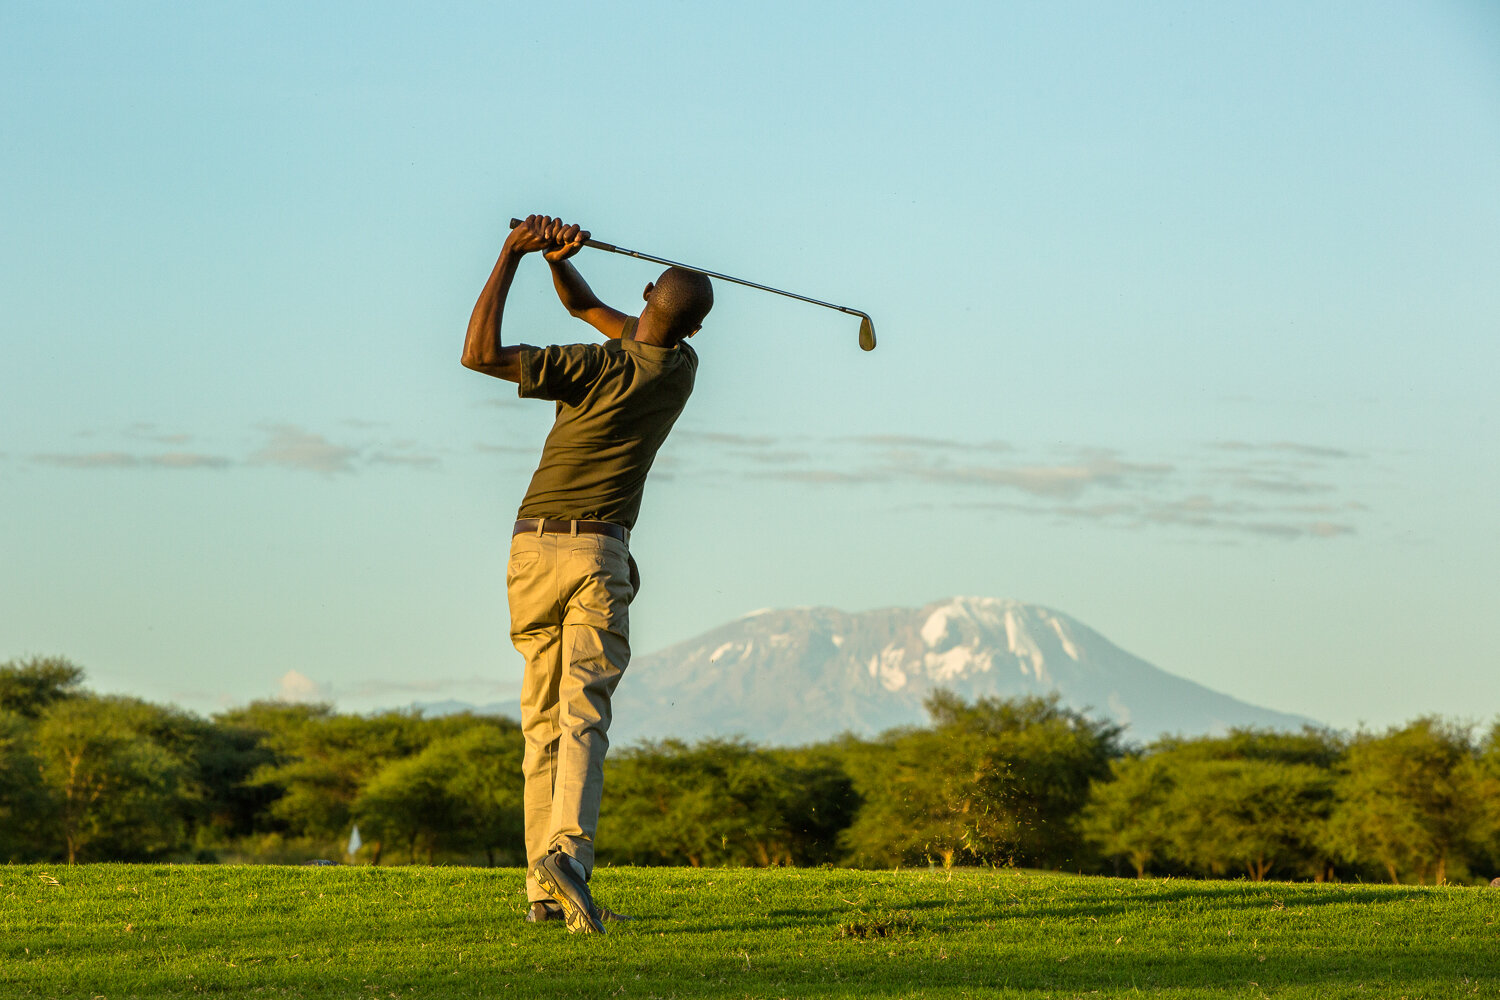 The Kilimanjaro Golf & Wildlife Estate, - home to Tanzania's no. 1 championship golf course, is right on our doorstep! Find out more about the course, the club and its spectacular surroundings.Learn more ➝